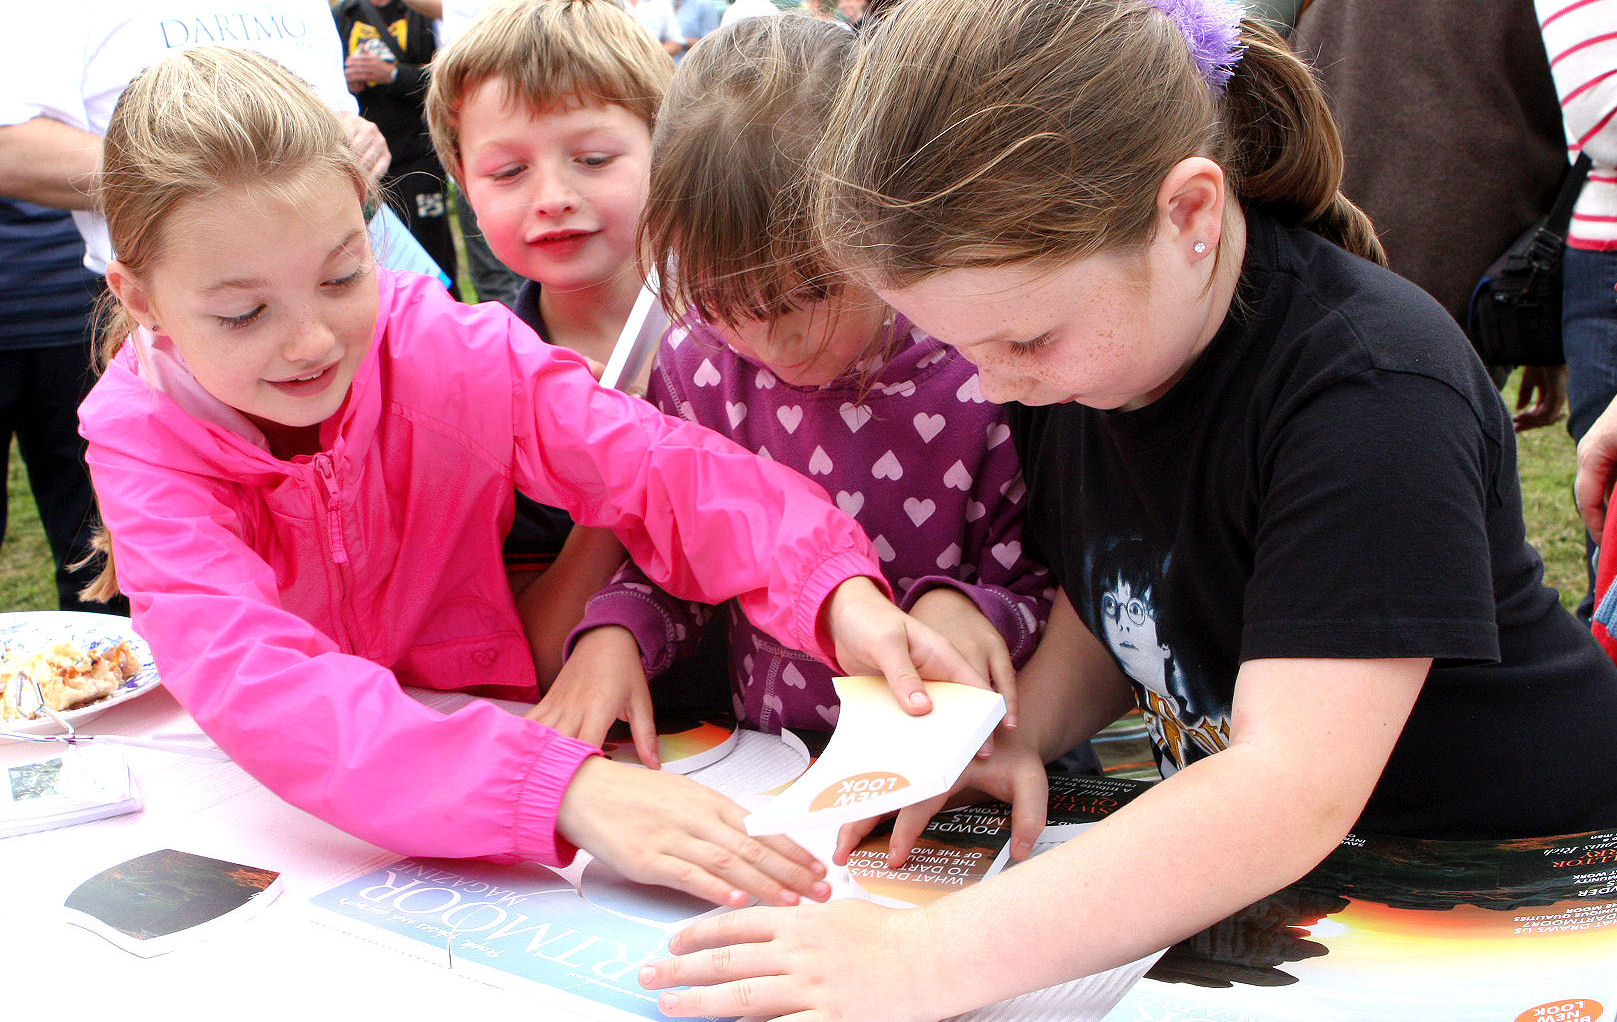 Local kids at Chagford Show keen to complete the puzzle in the fastest time.